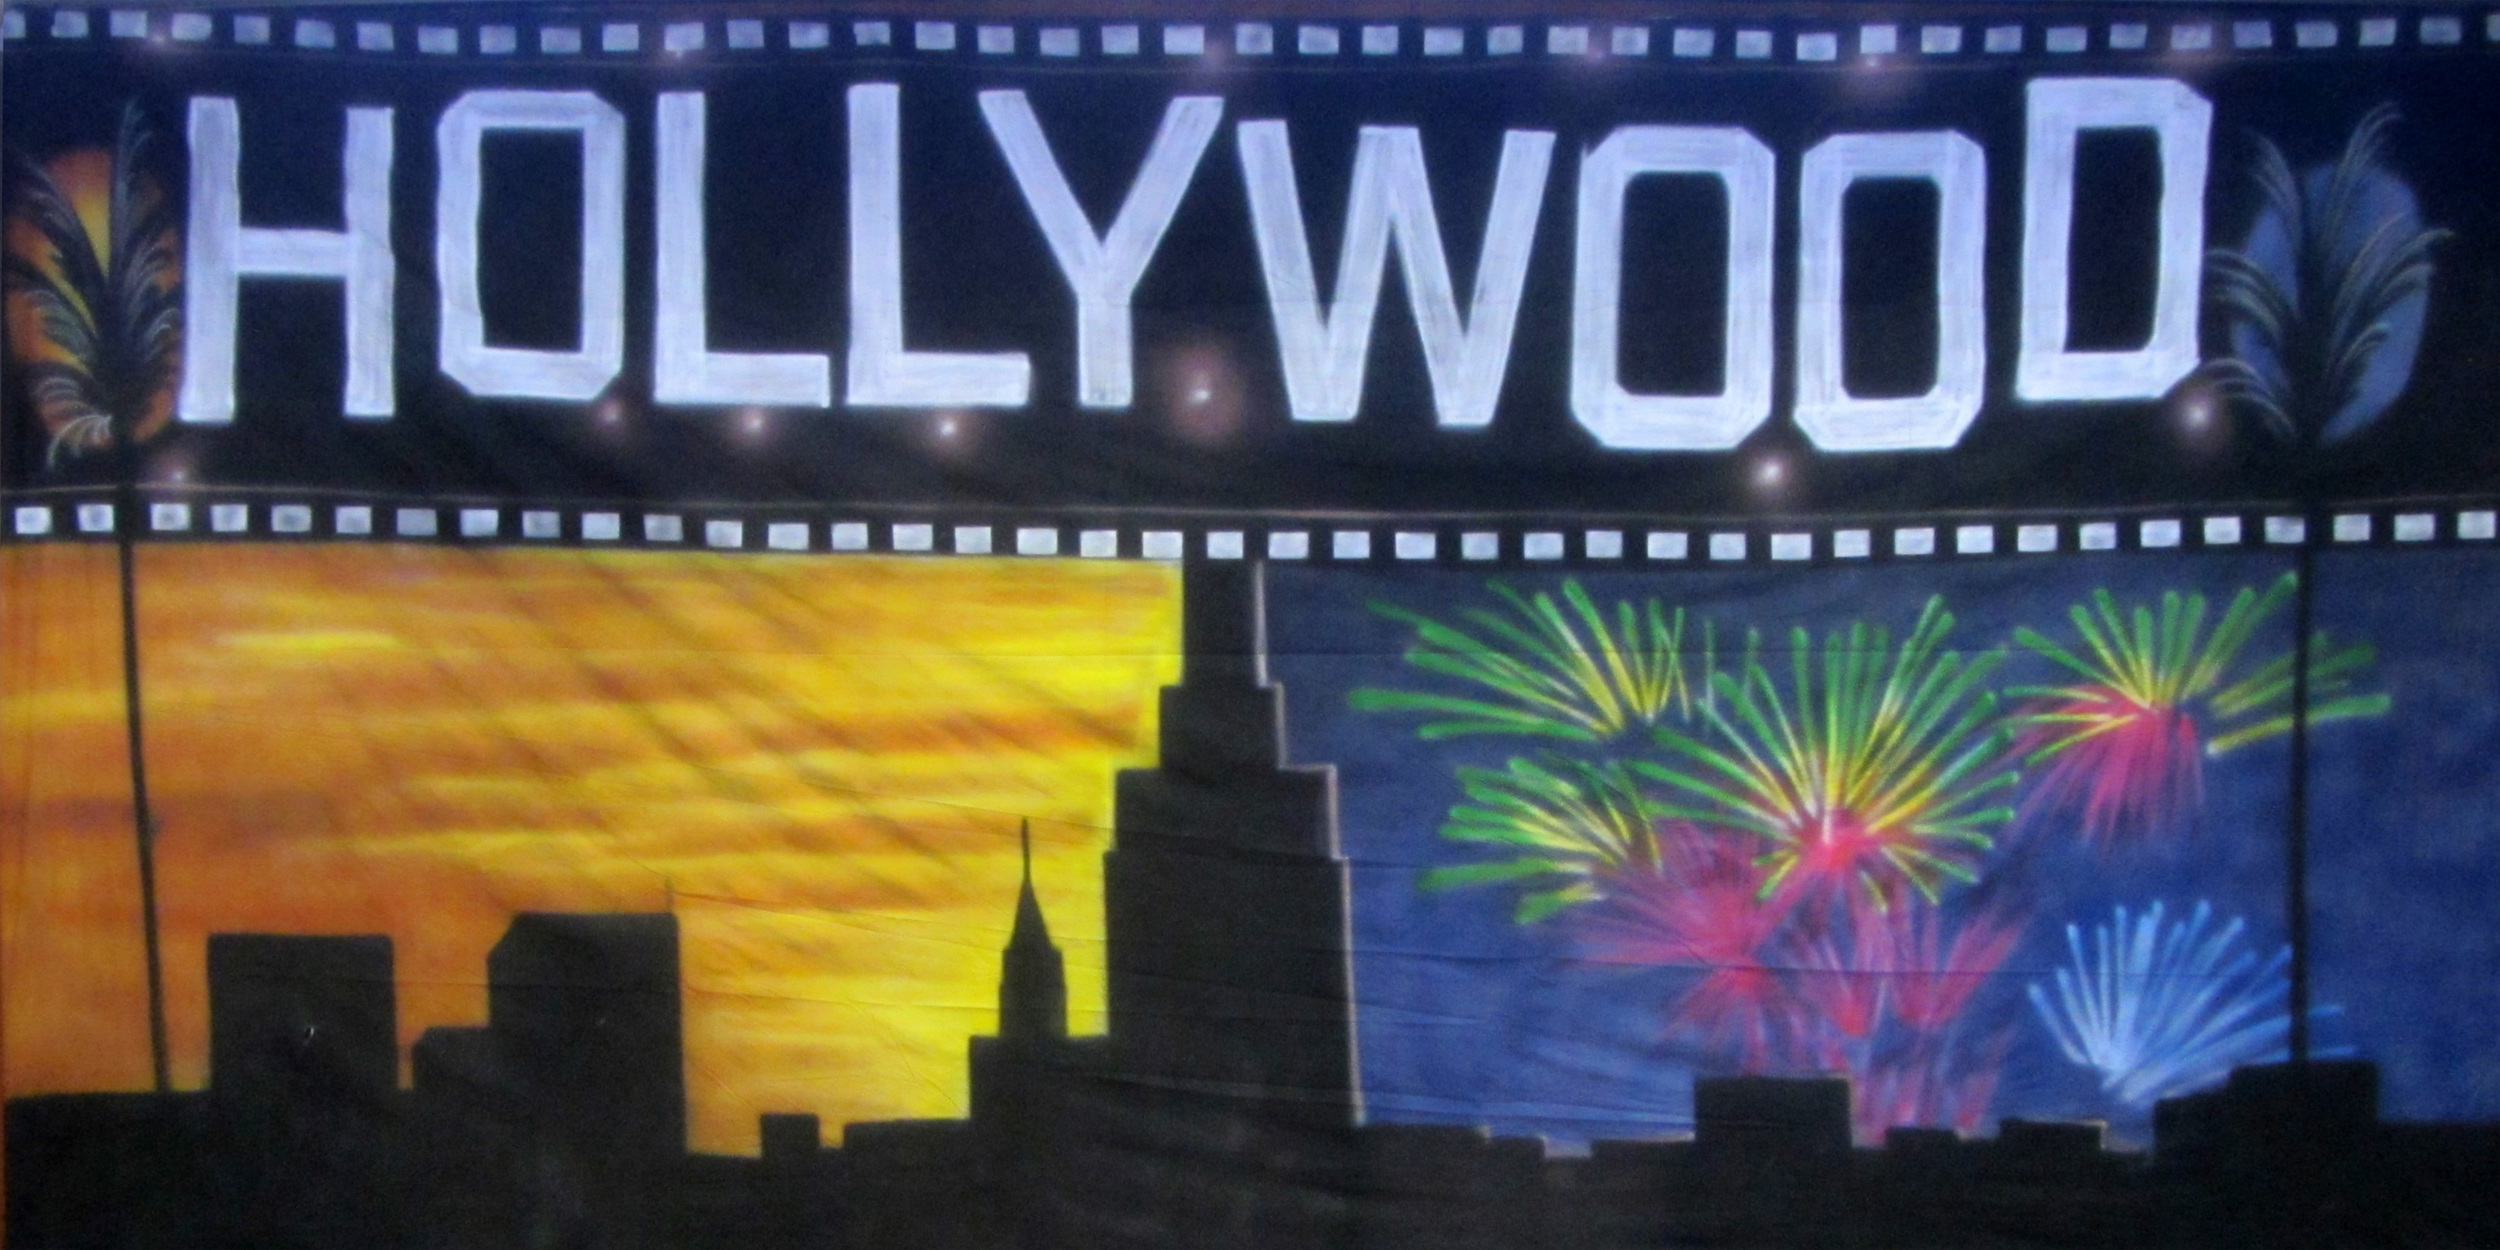 Backdrop  Measures approximately 6m x 3m (20' x 10')  Can be supplied with freestanding, goal post style stand